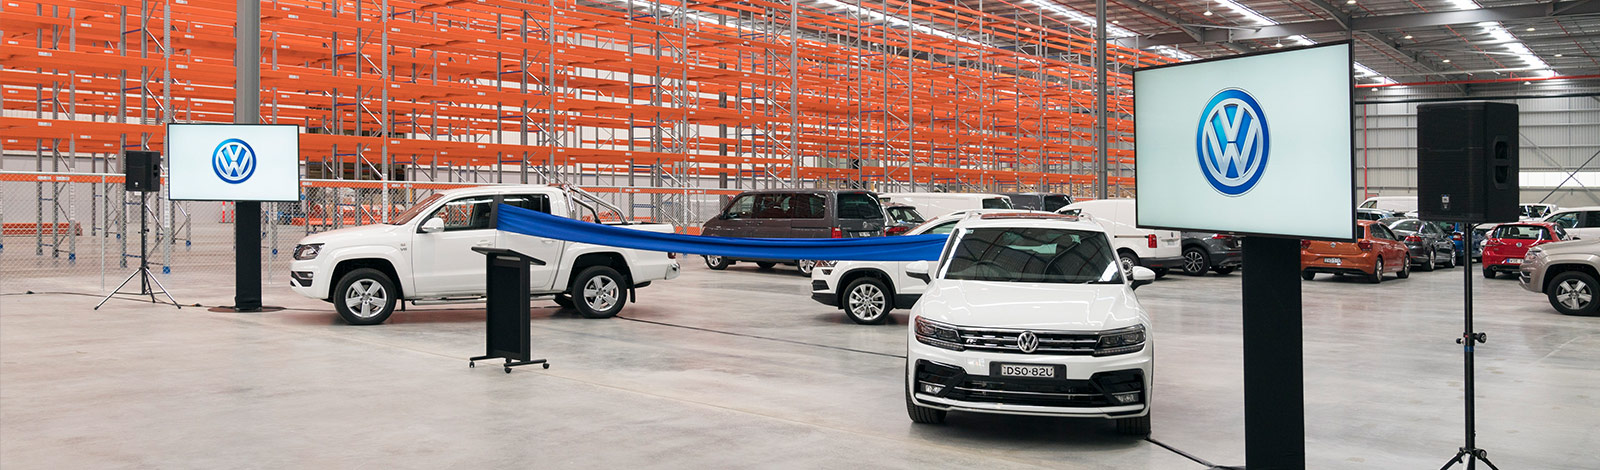 Volkswagen Group Expands Its Spares Capacity